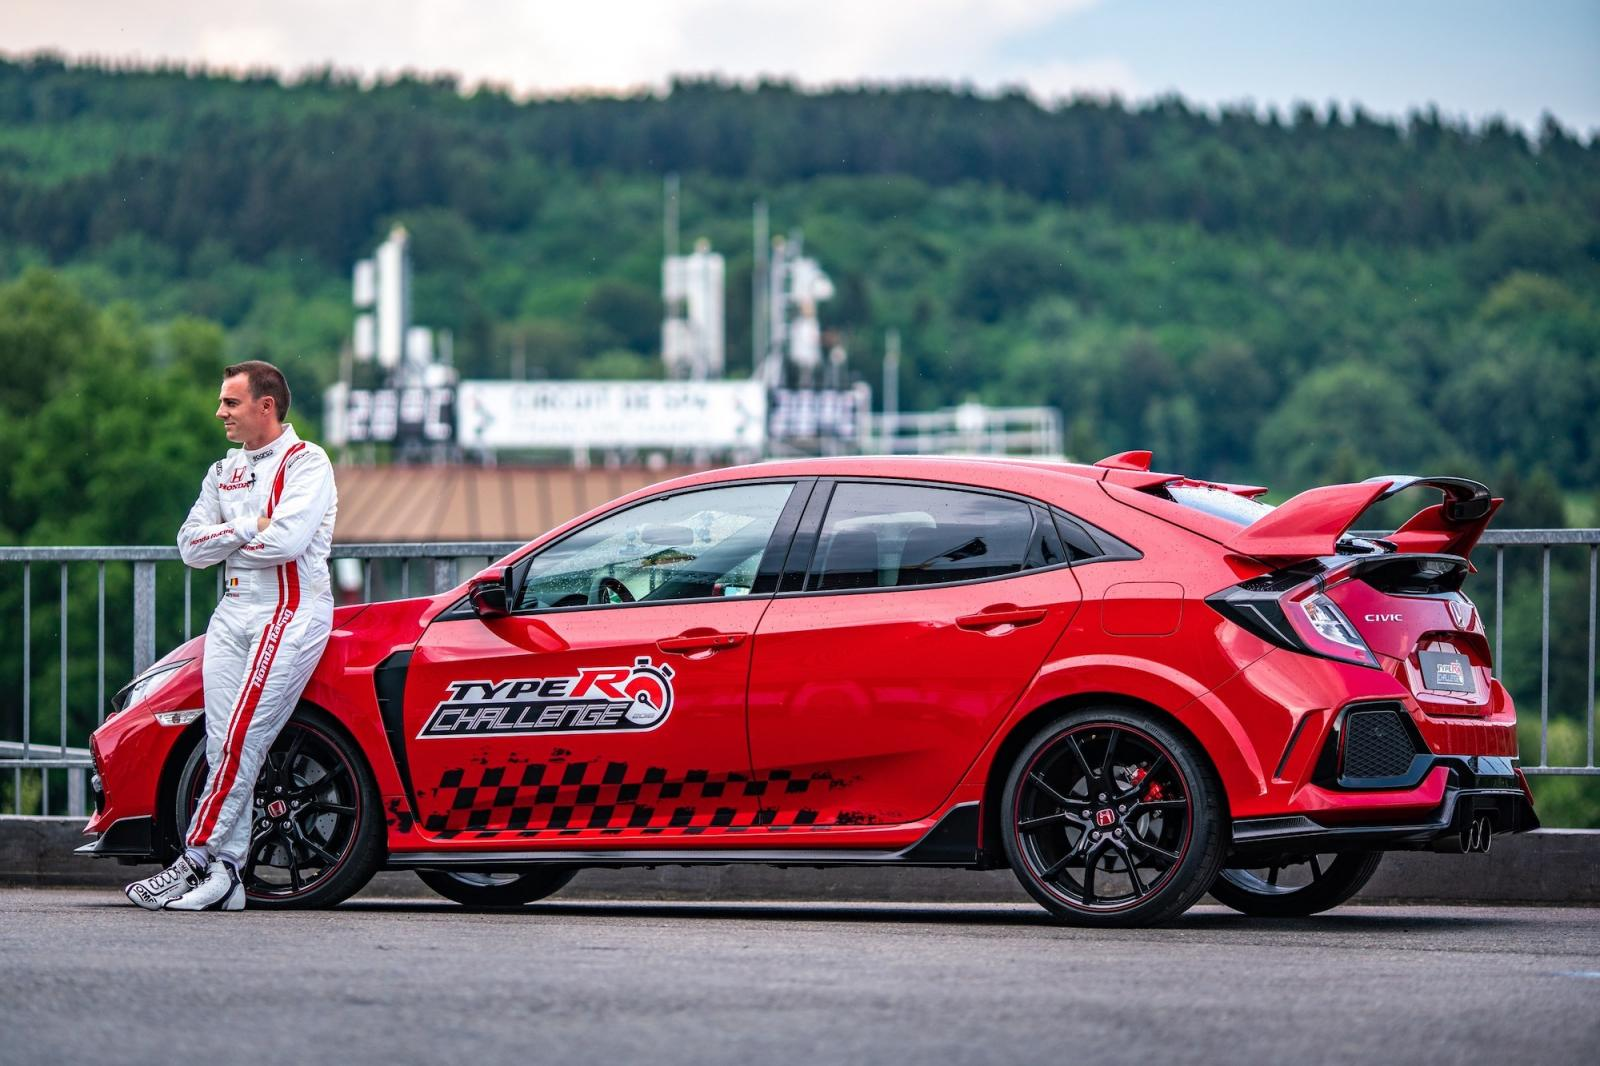 honda-civic-type-r-challenge-type-r-spa-francorchamps-2018-1